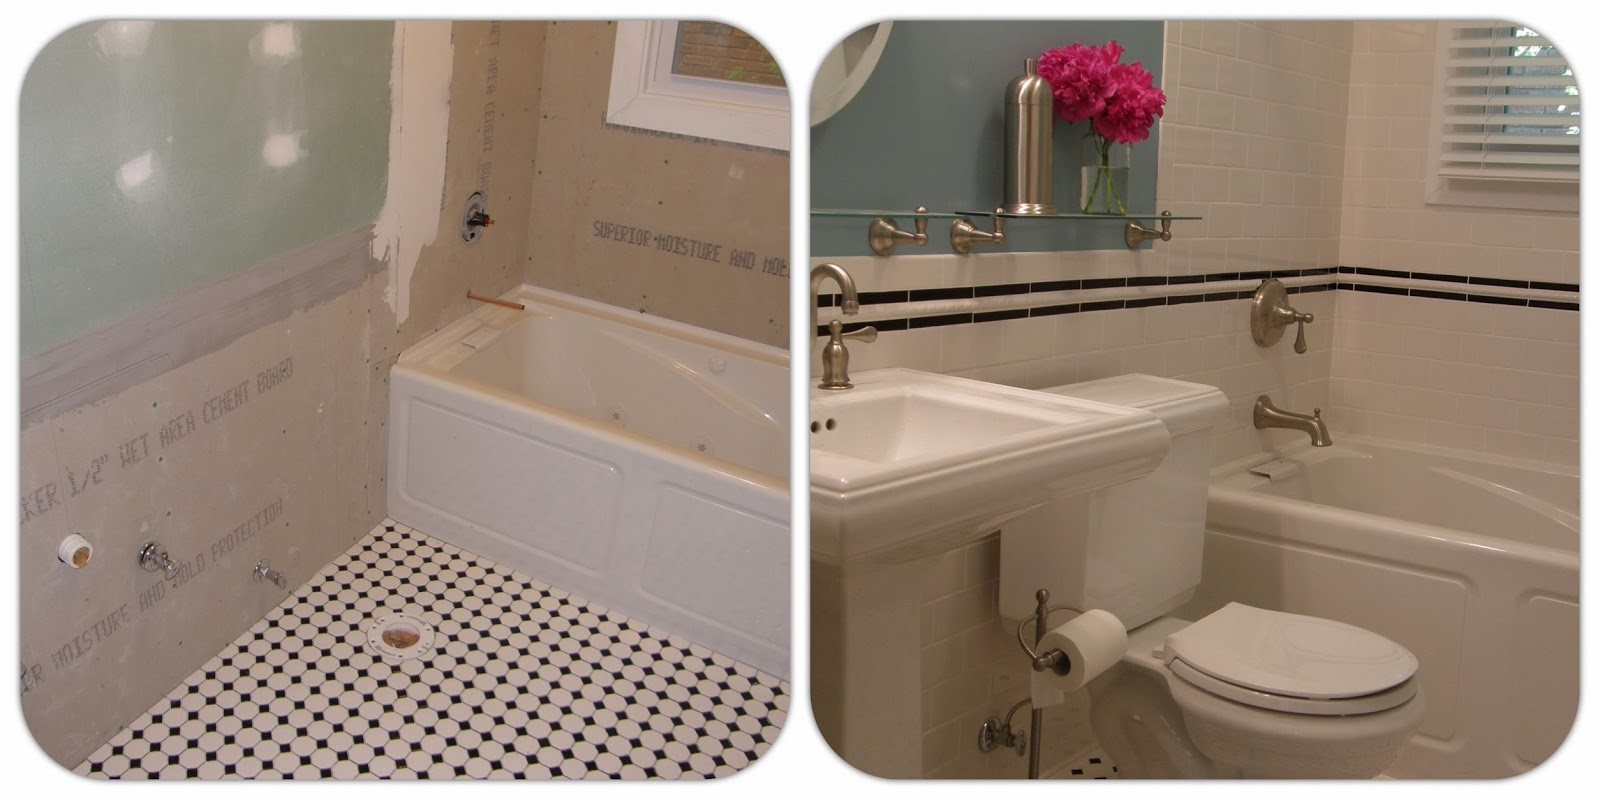 Hendersons home improvement llc porcelain or ceramic tile before and after dailygadgetfo Choice Image